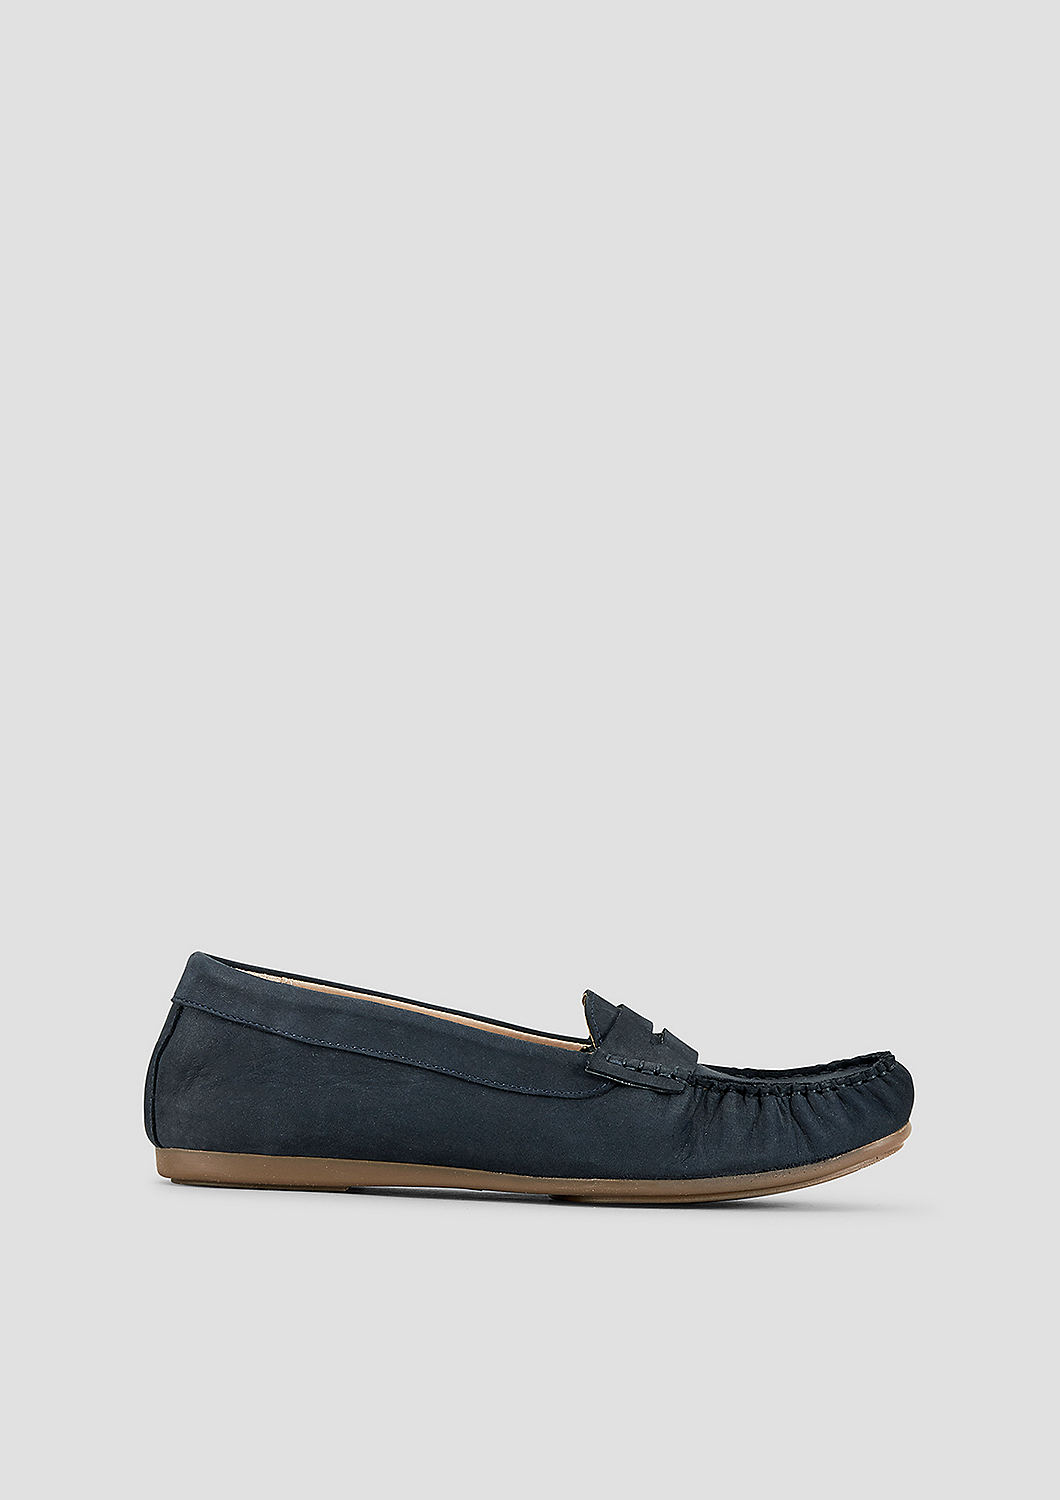 s.Oliver Komfortable Loafer aus Veloursleder